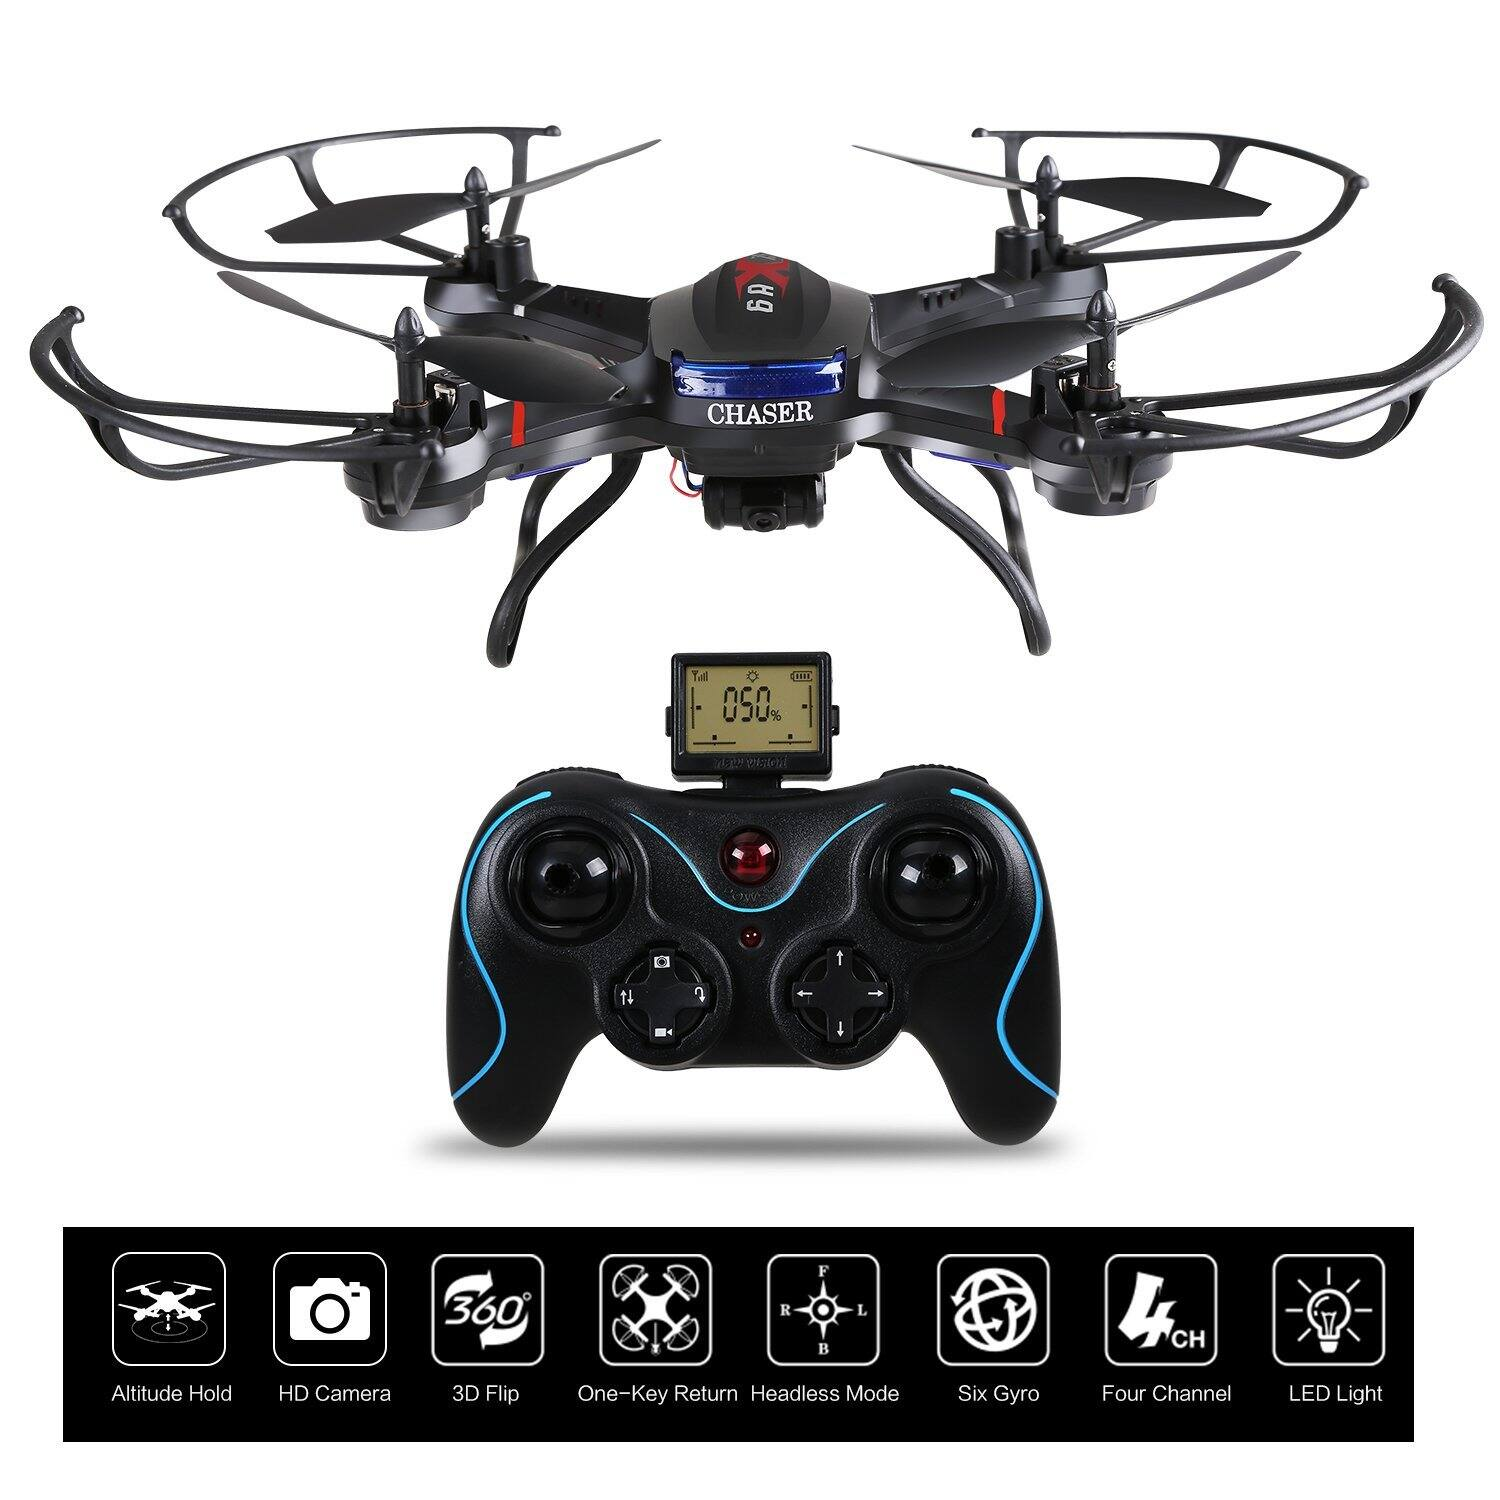 F181C RC Quadcopter Drone with HD Camera RTF 4 Channel 2.4GHz 6-Gyro for $59.99 AC + Free Shipping